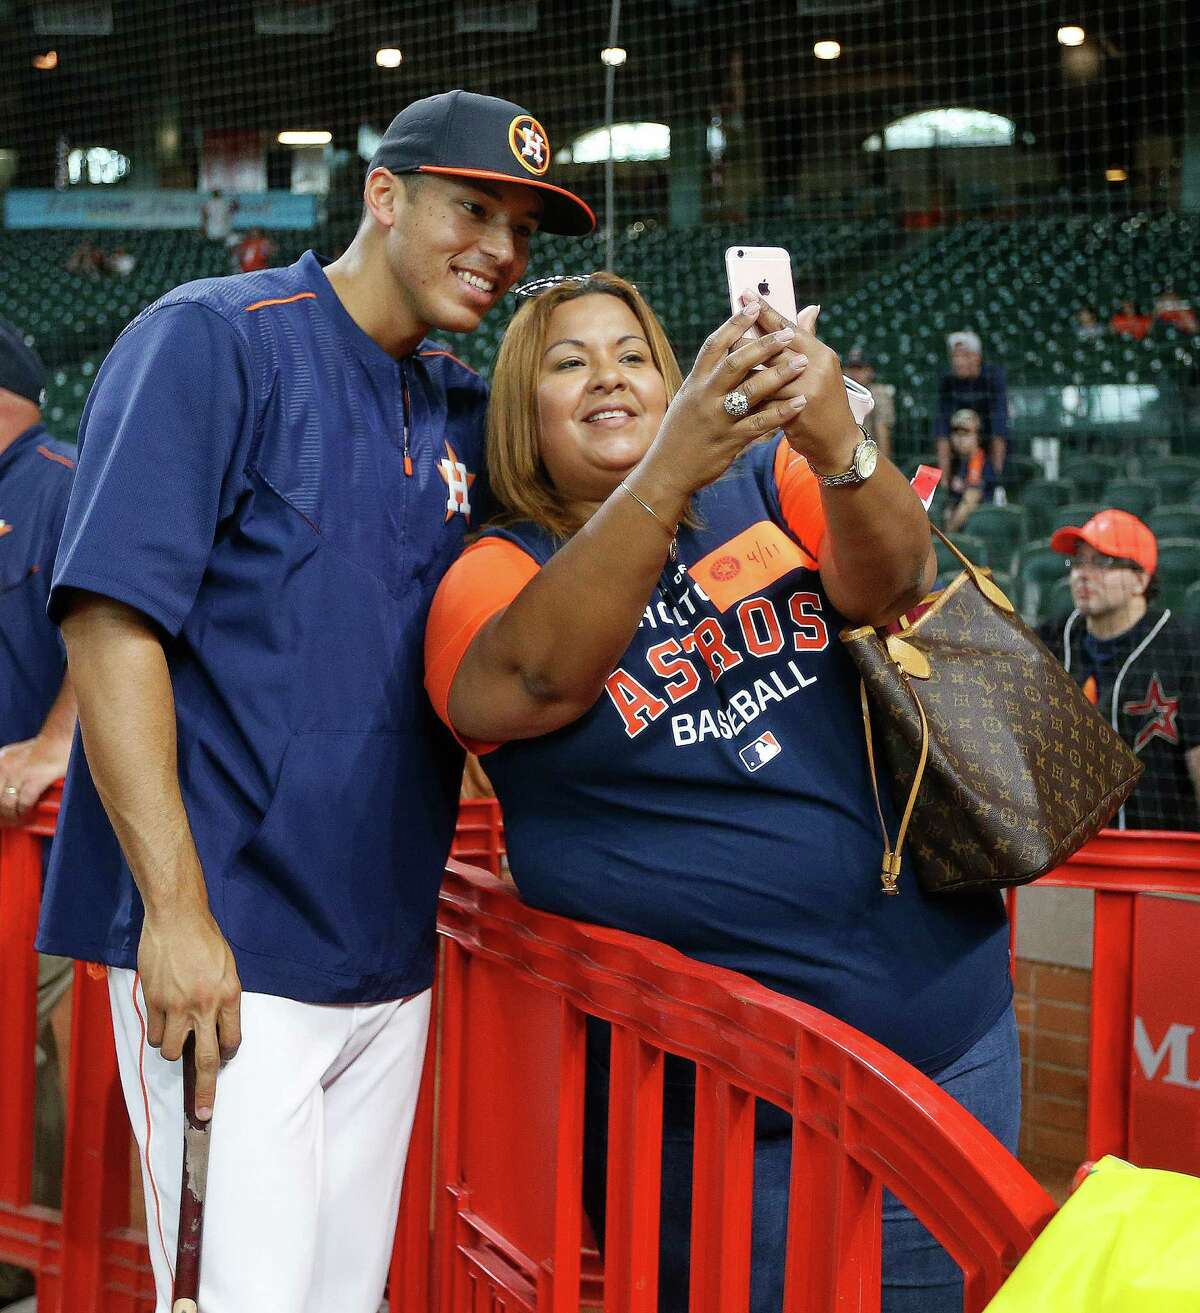 Houston Astros shortstop Carlos Correa takes a photo with his mother Sandybel during batting practice before the start of an MLB game at Minute Maid Park, Monday, April 11, 2016, in Houston.